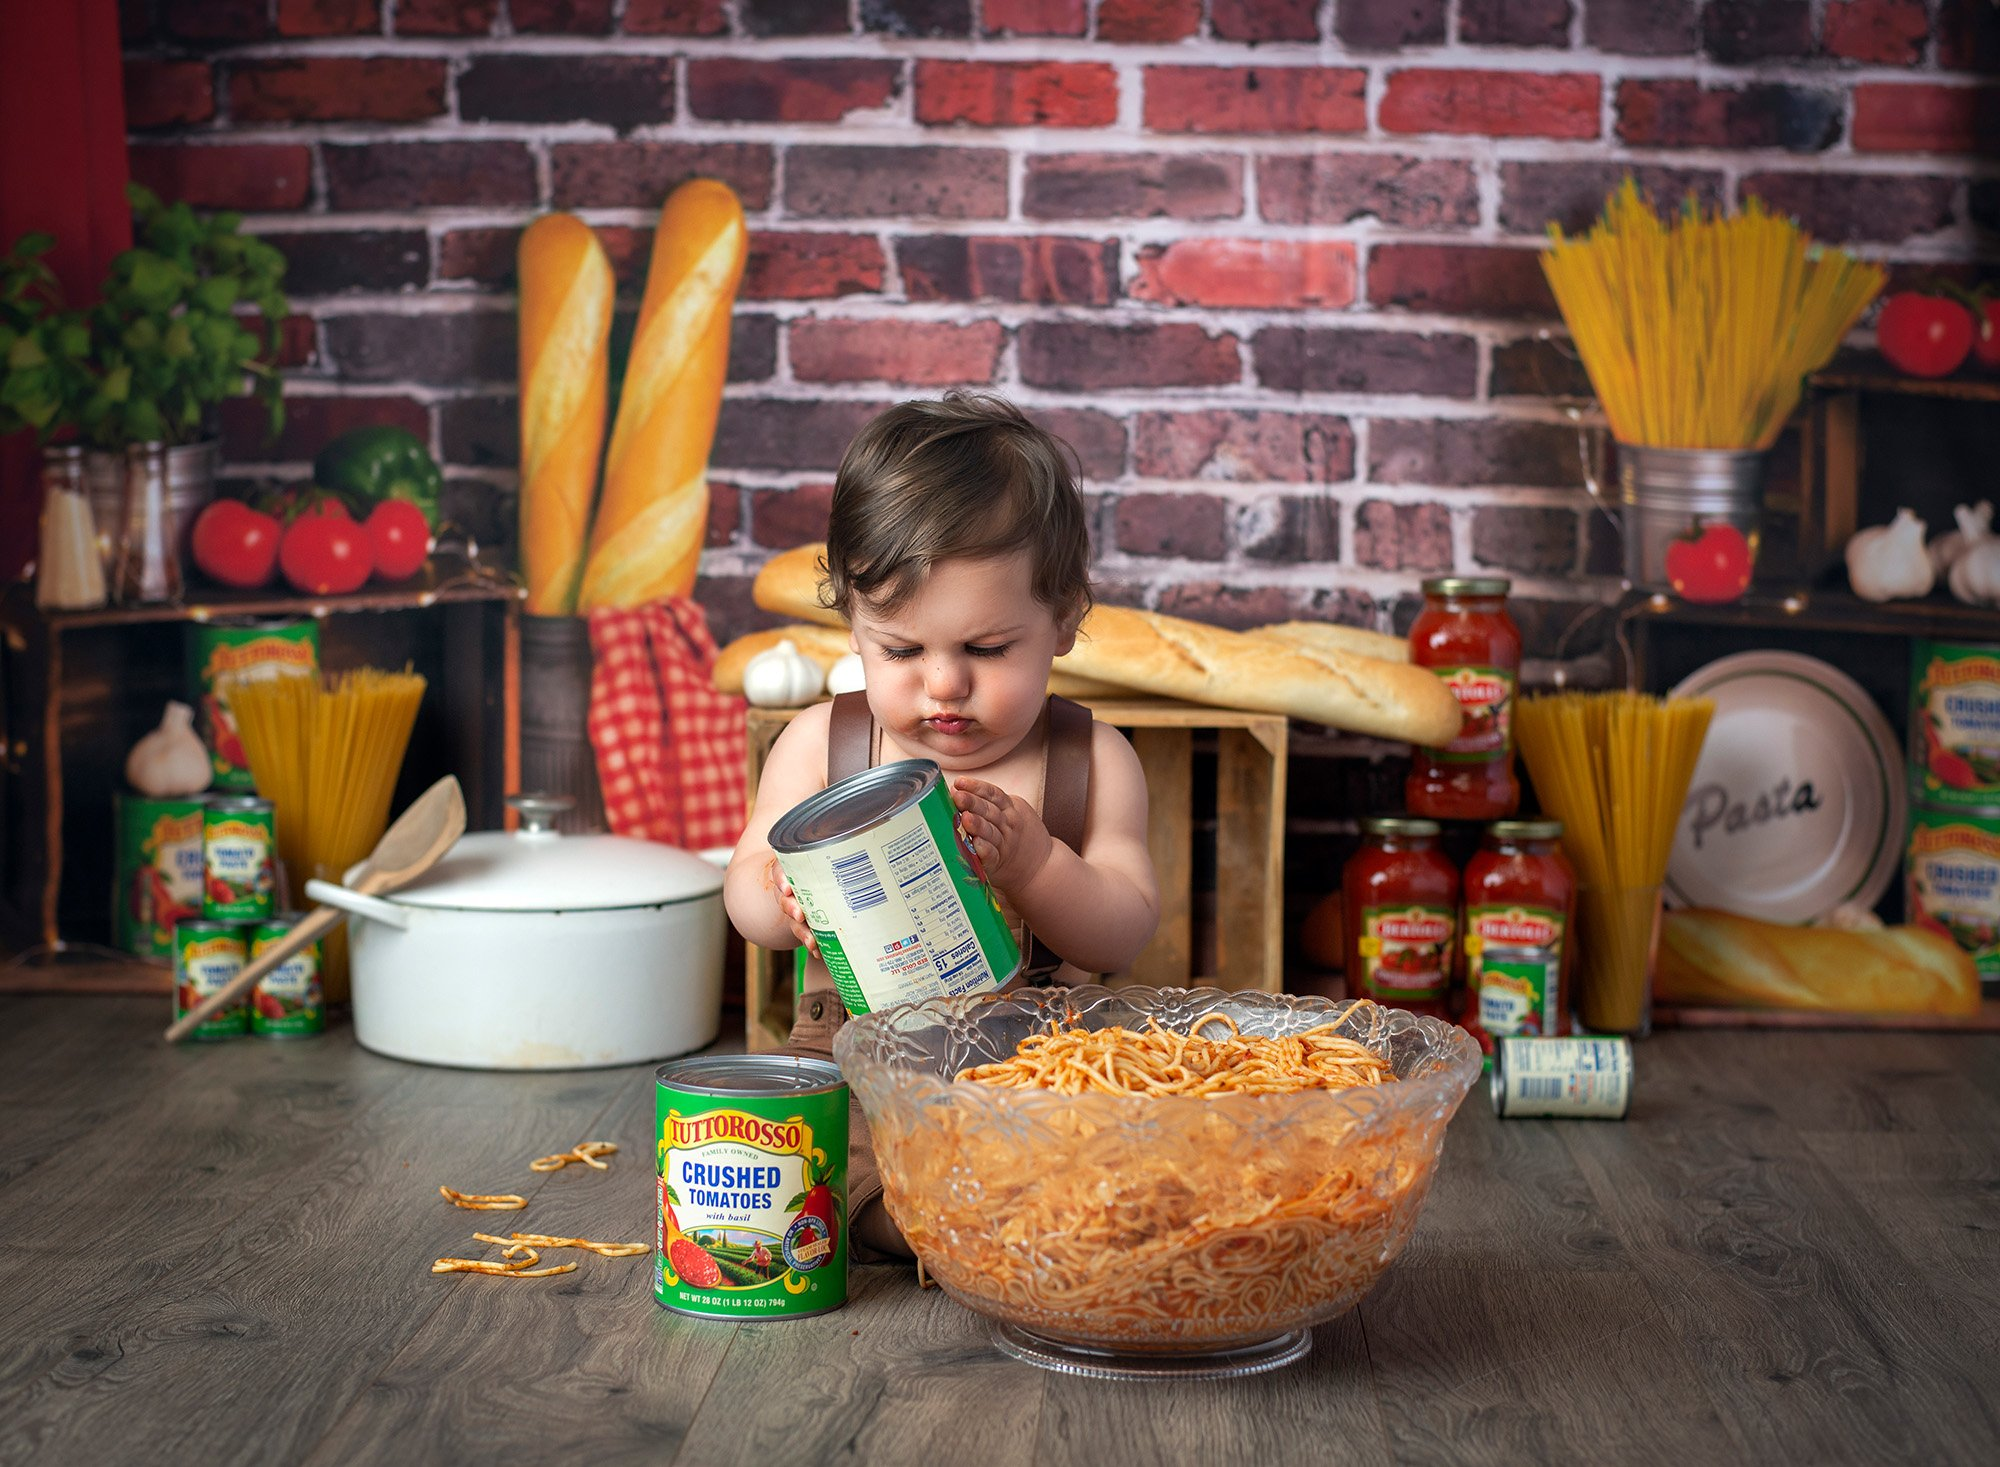 1 year baby photoshoot spaghetti smash one year old boy playing with tomato cans while surrounded by pasta and sauce jars on a brick background